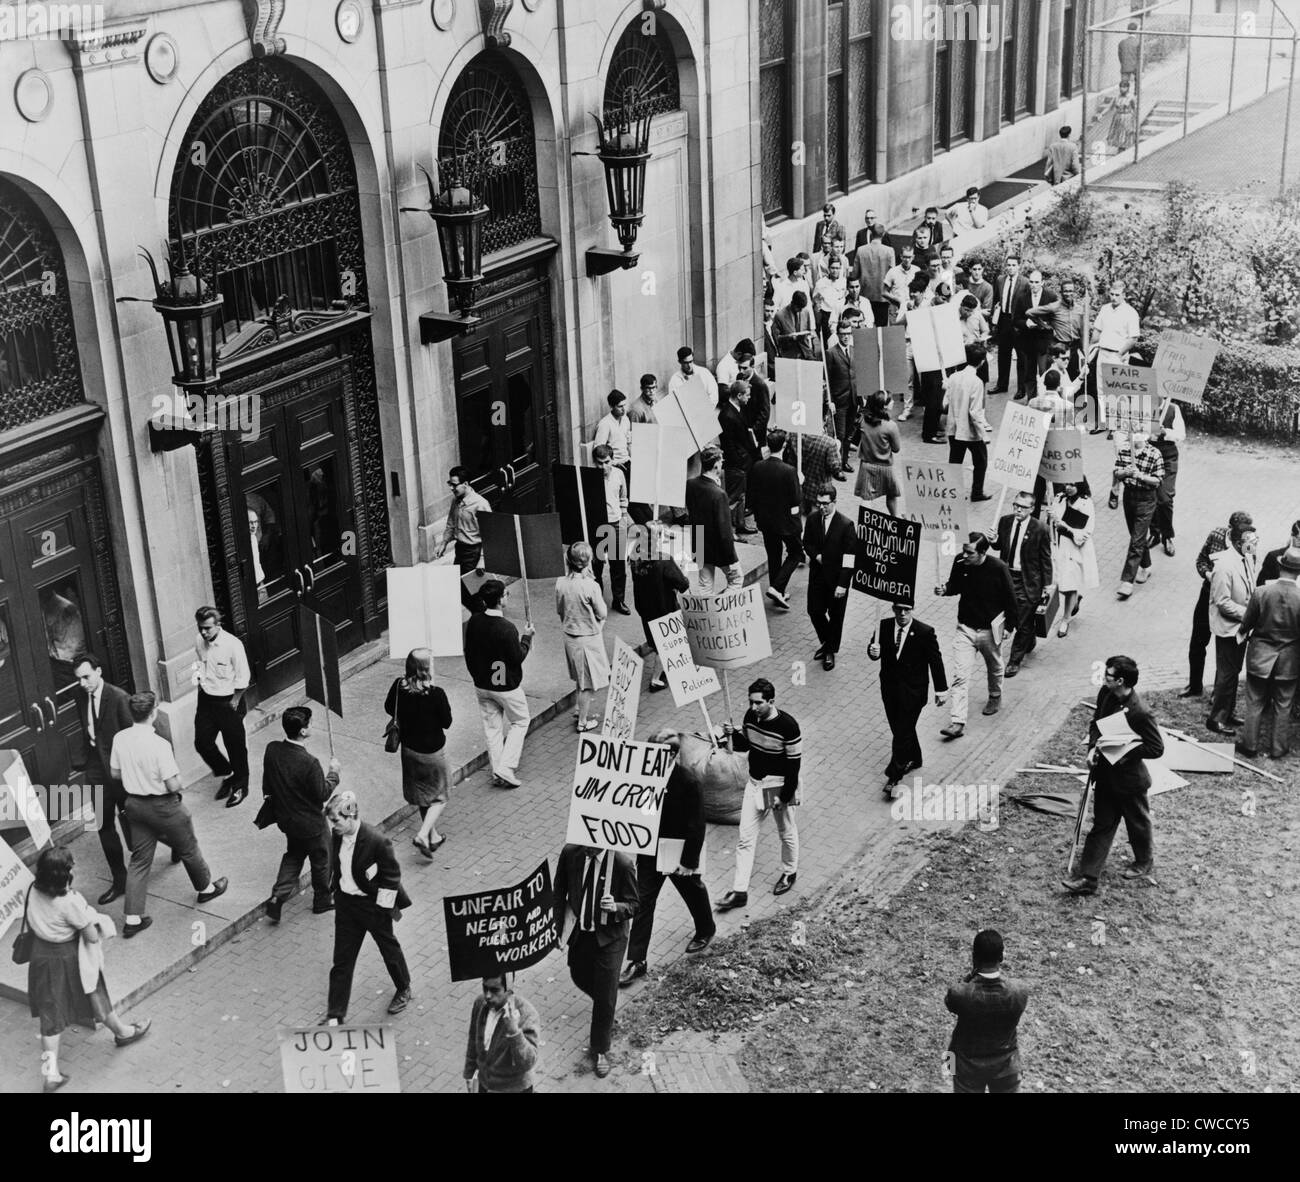 CORE pickets at Columbia University. Demonstrators demanded union representation for University workers in 1964. - Stock Image